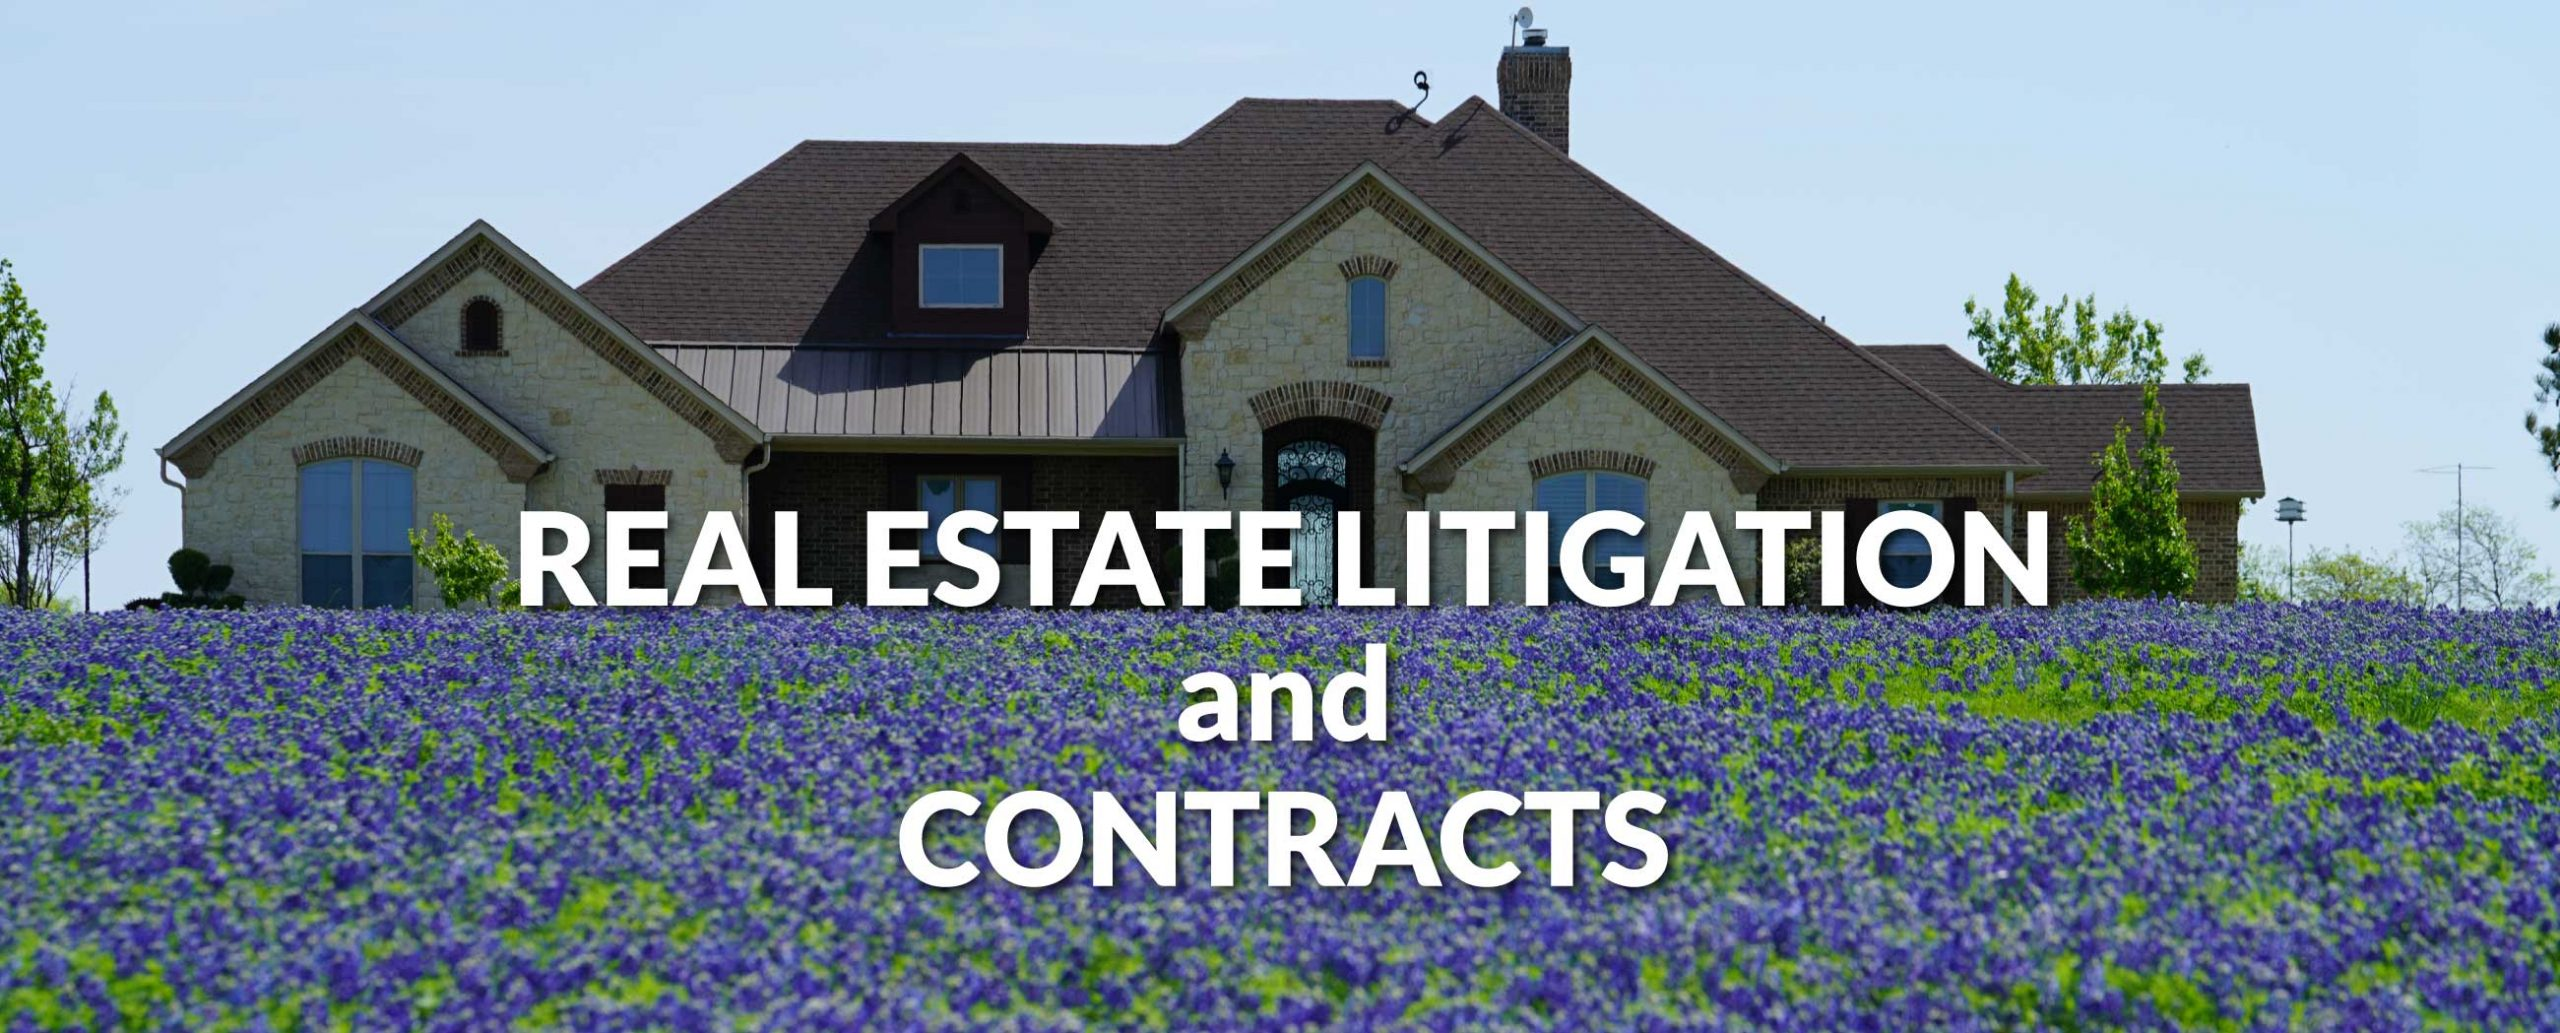 Real estate litigation and contracts